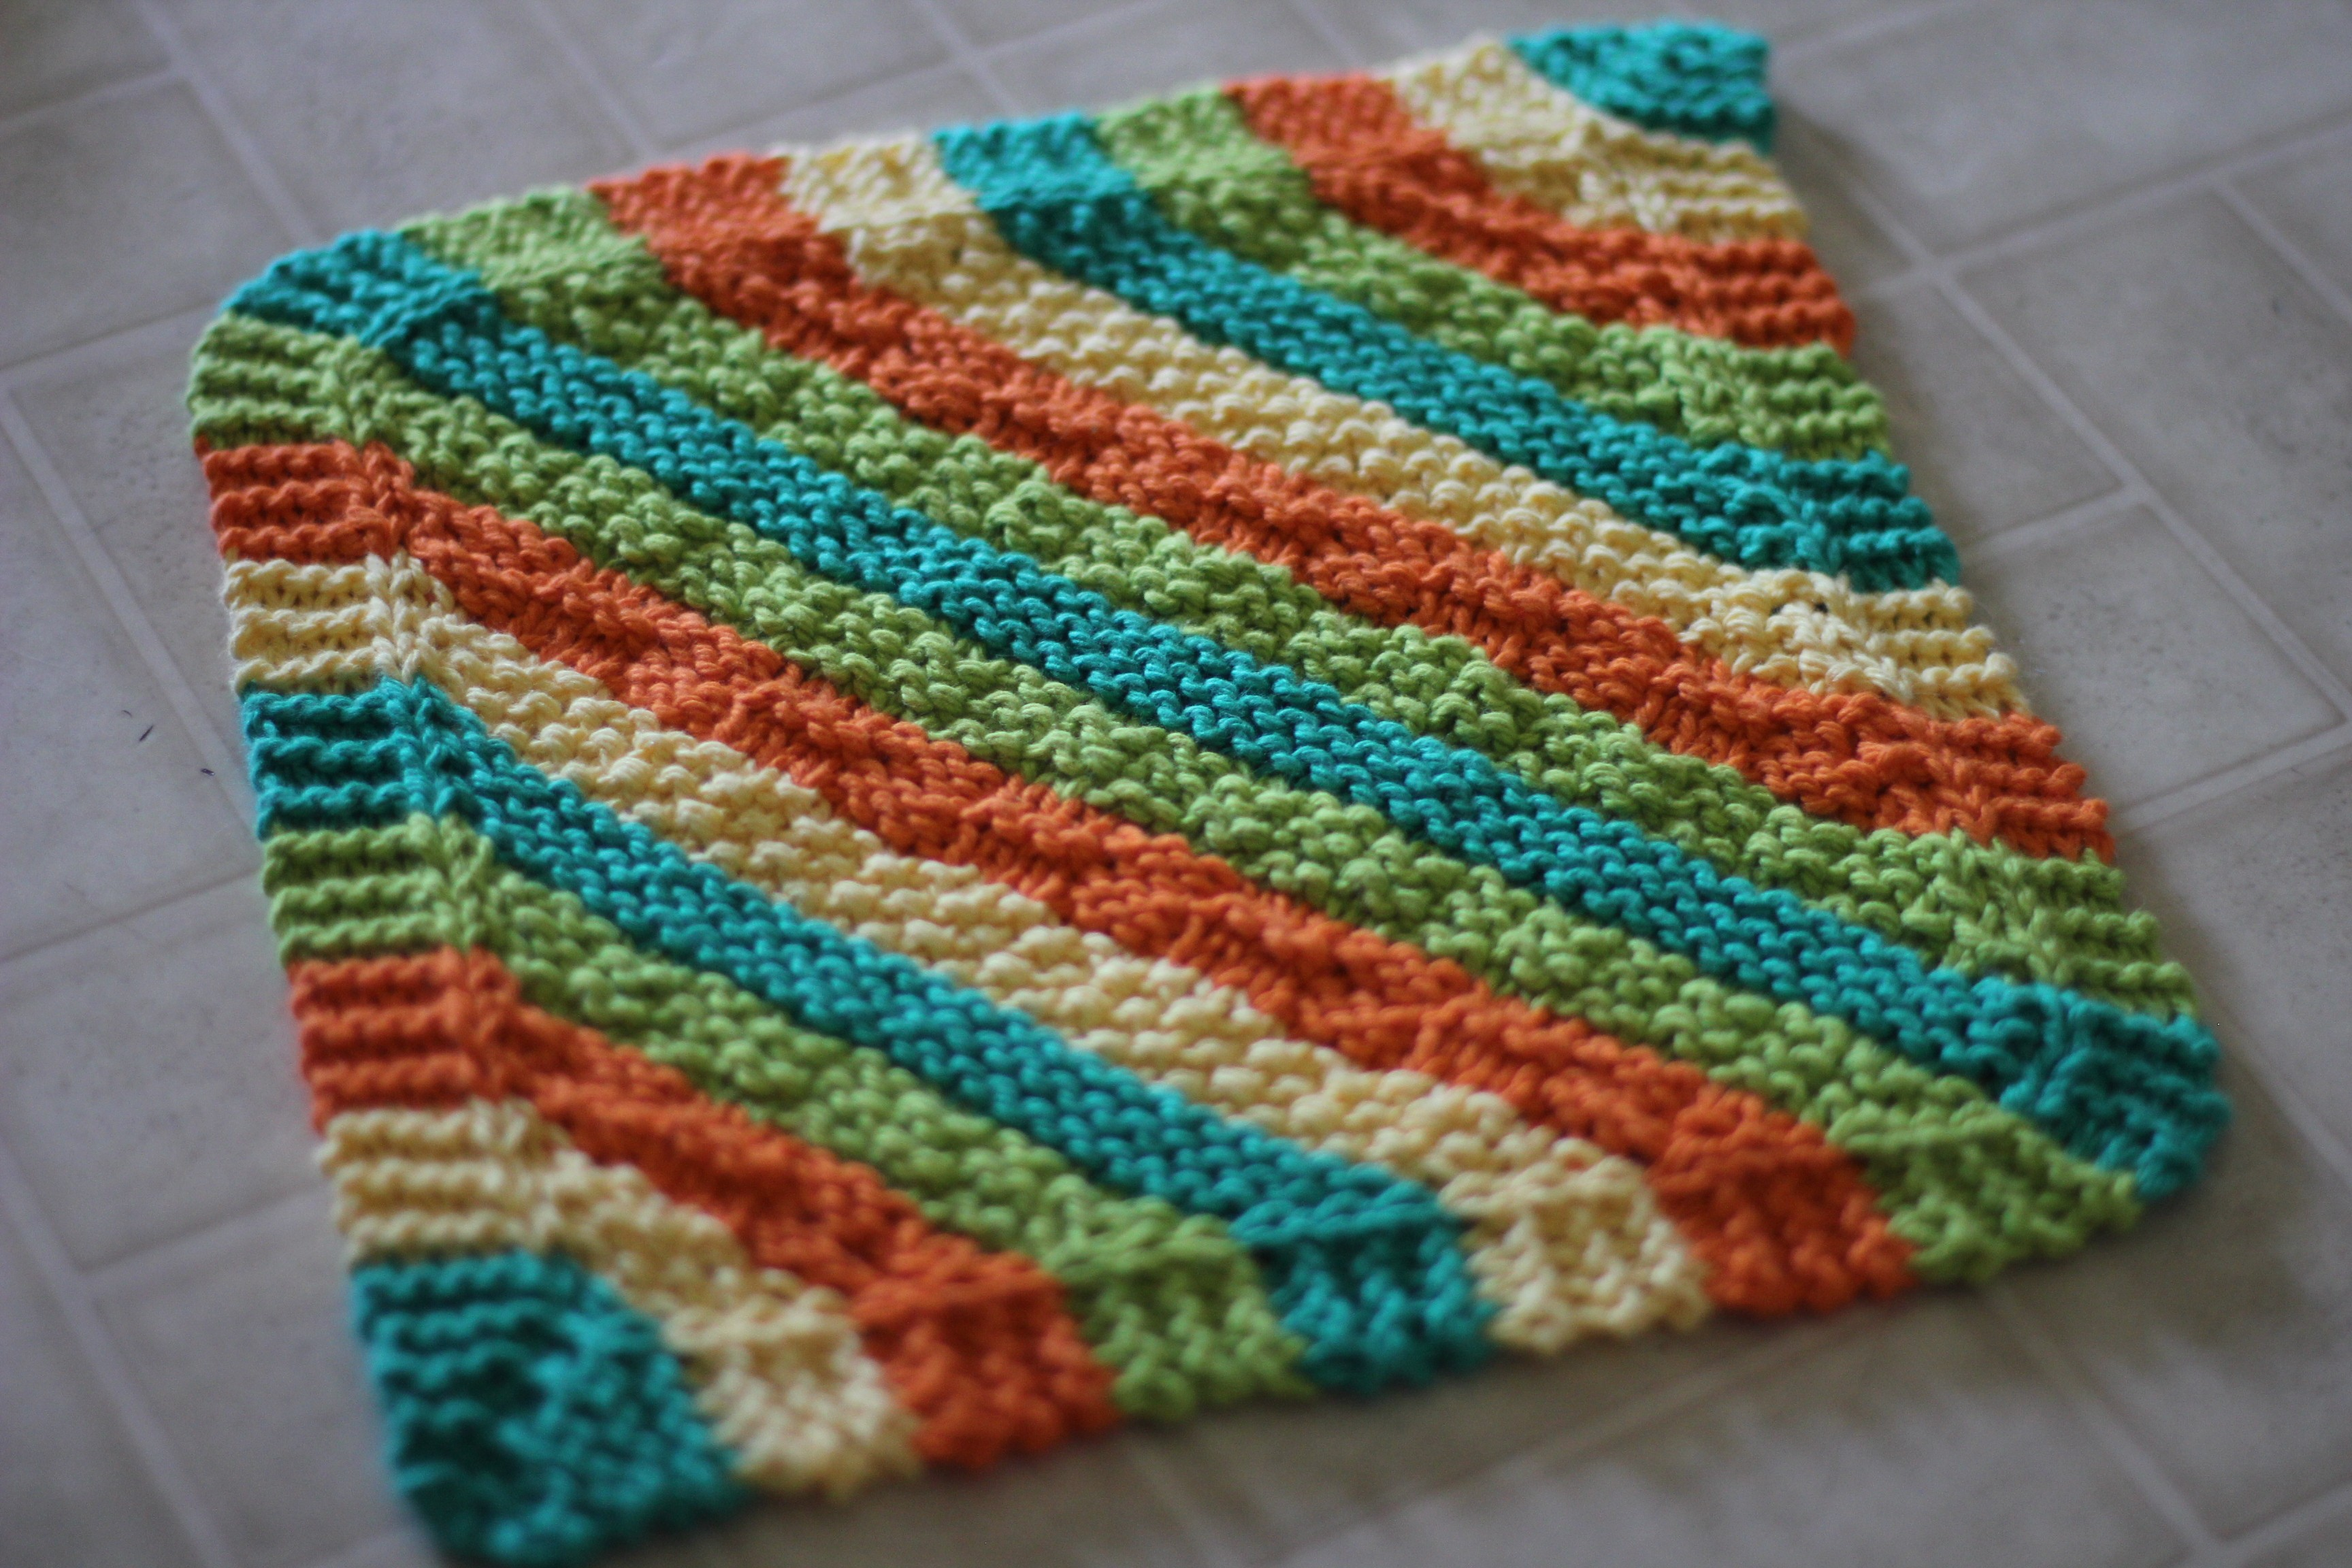 Knit Patterns For Dishcloths Free : Knitted Dishcloth Patterns A Knitting Blog